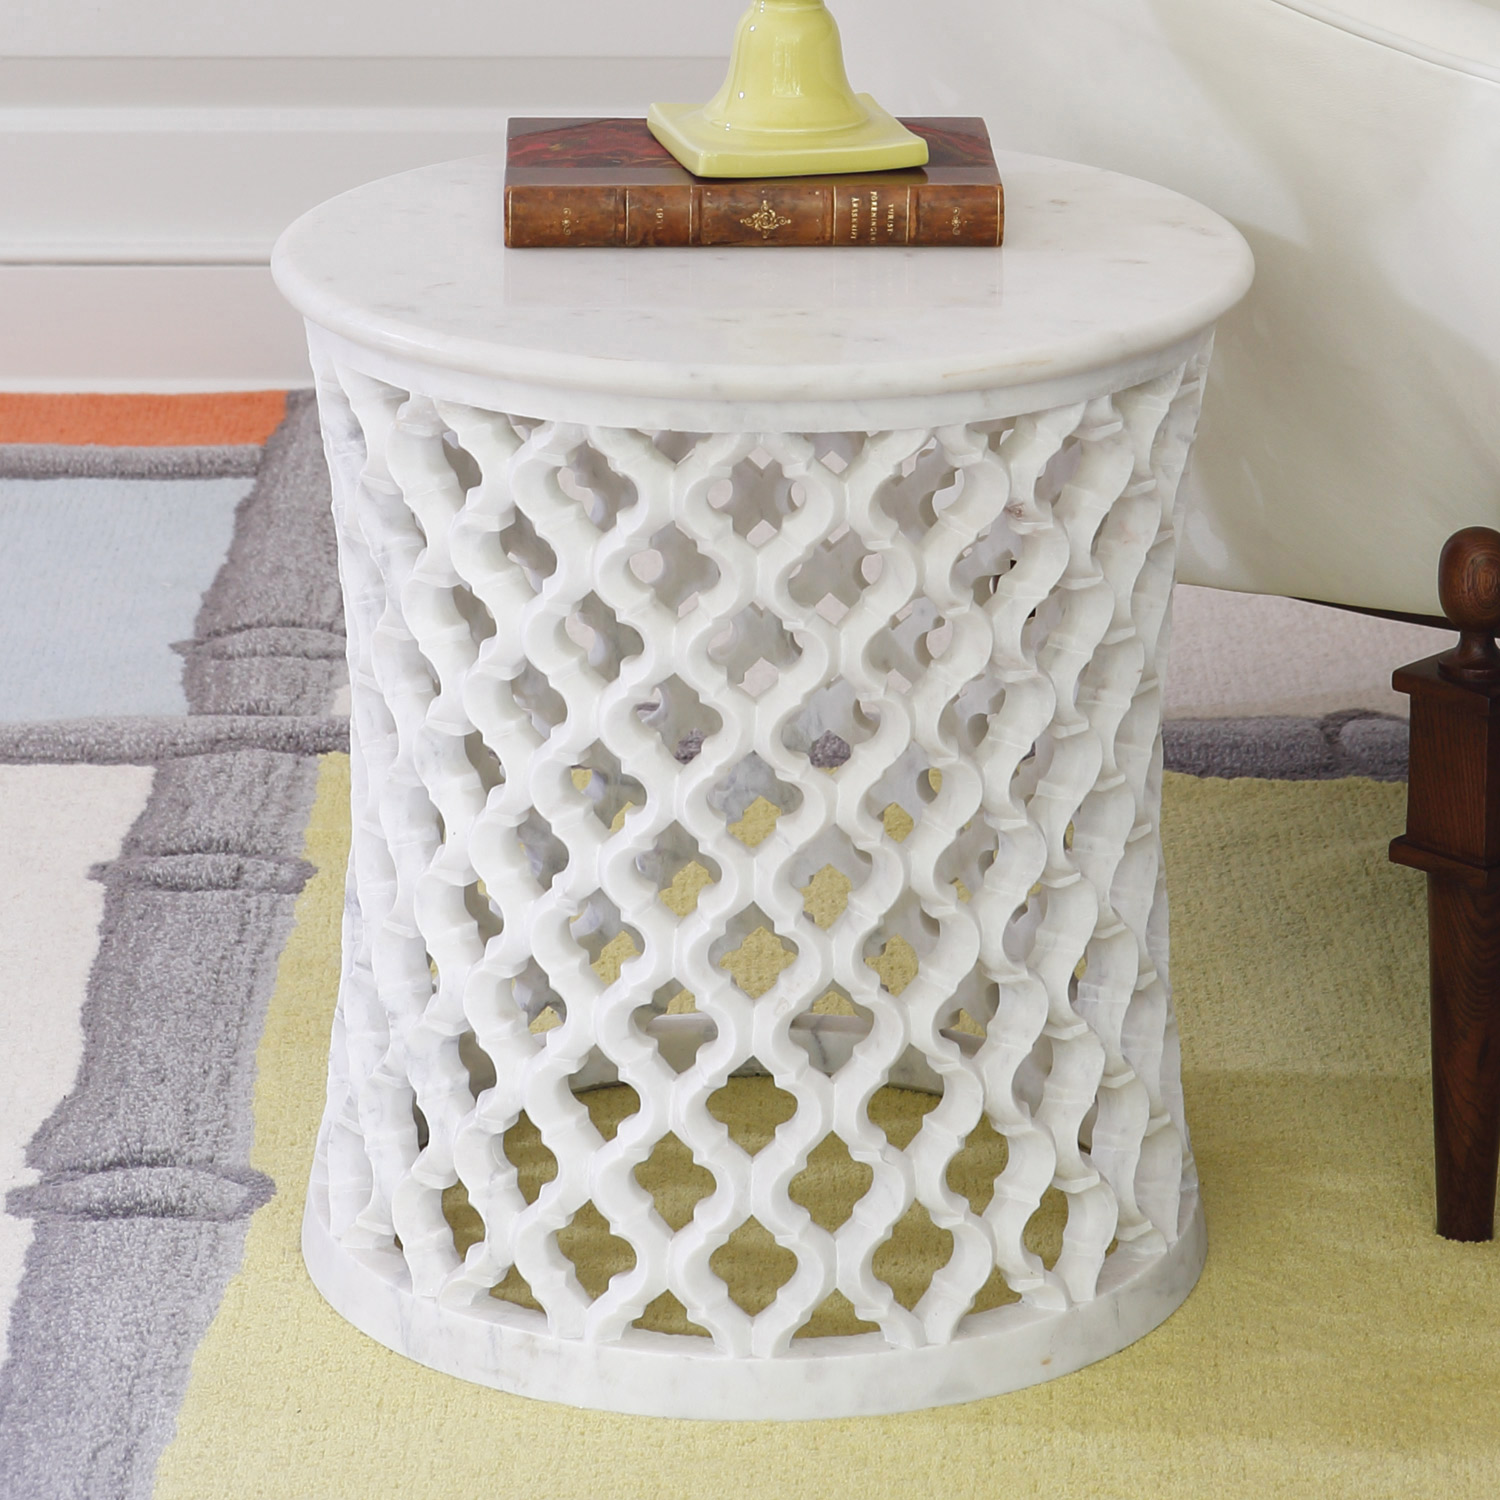 ... Stylish White Round End Table Marble Top Metal Base Material Argyle  Pattern Drum Design Contemporary Style ...